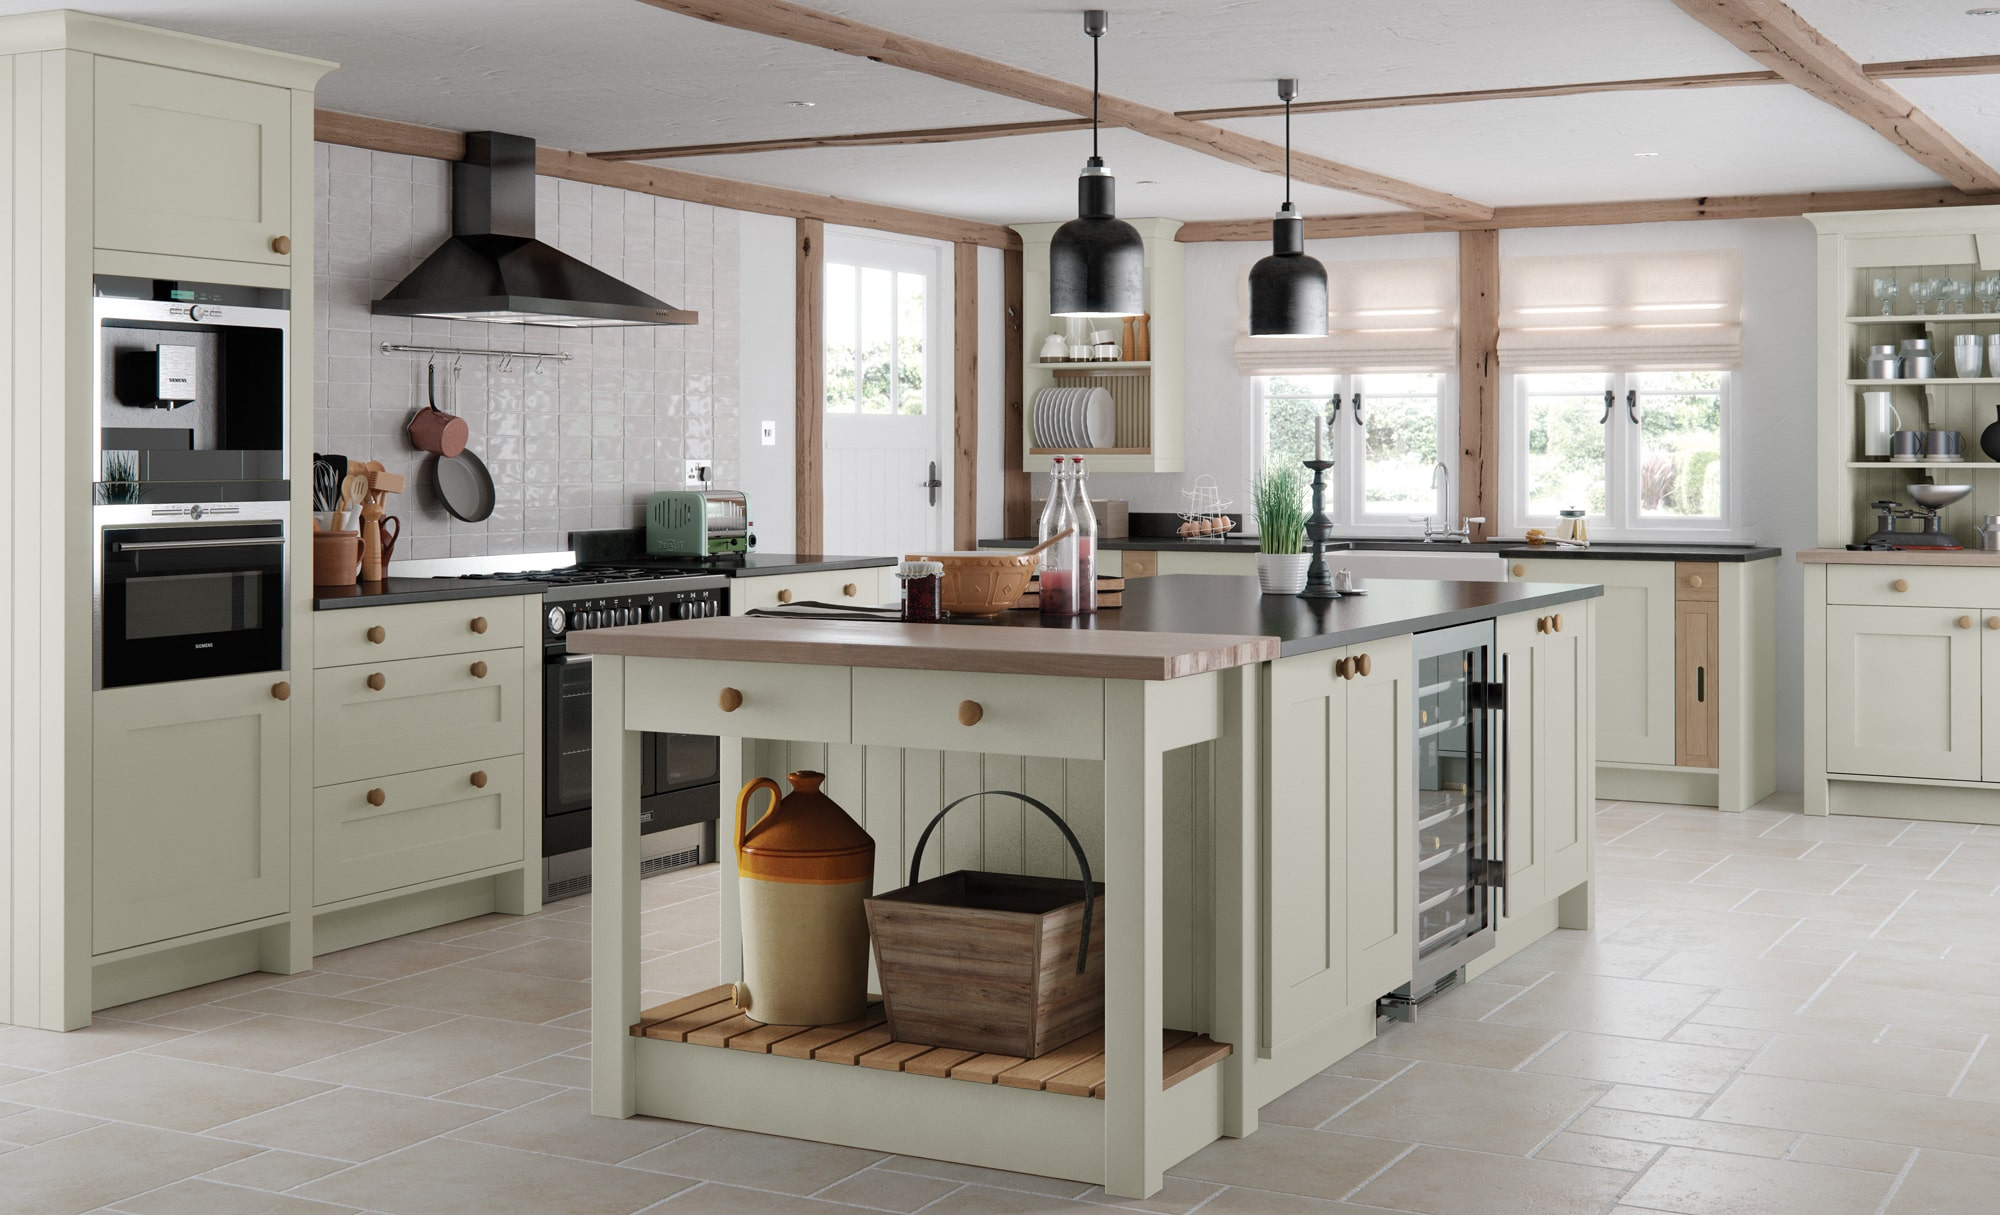 Burleigh-painted-mussel-kitchen-from Riley James Kitchens Stroud